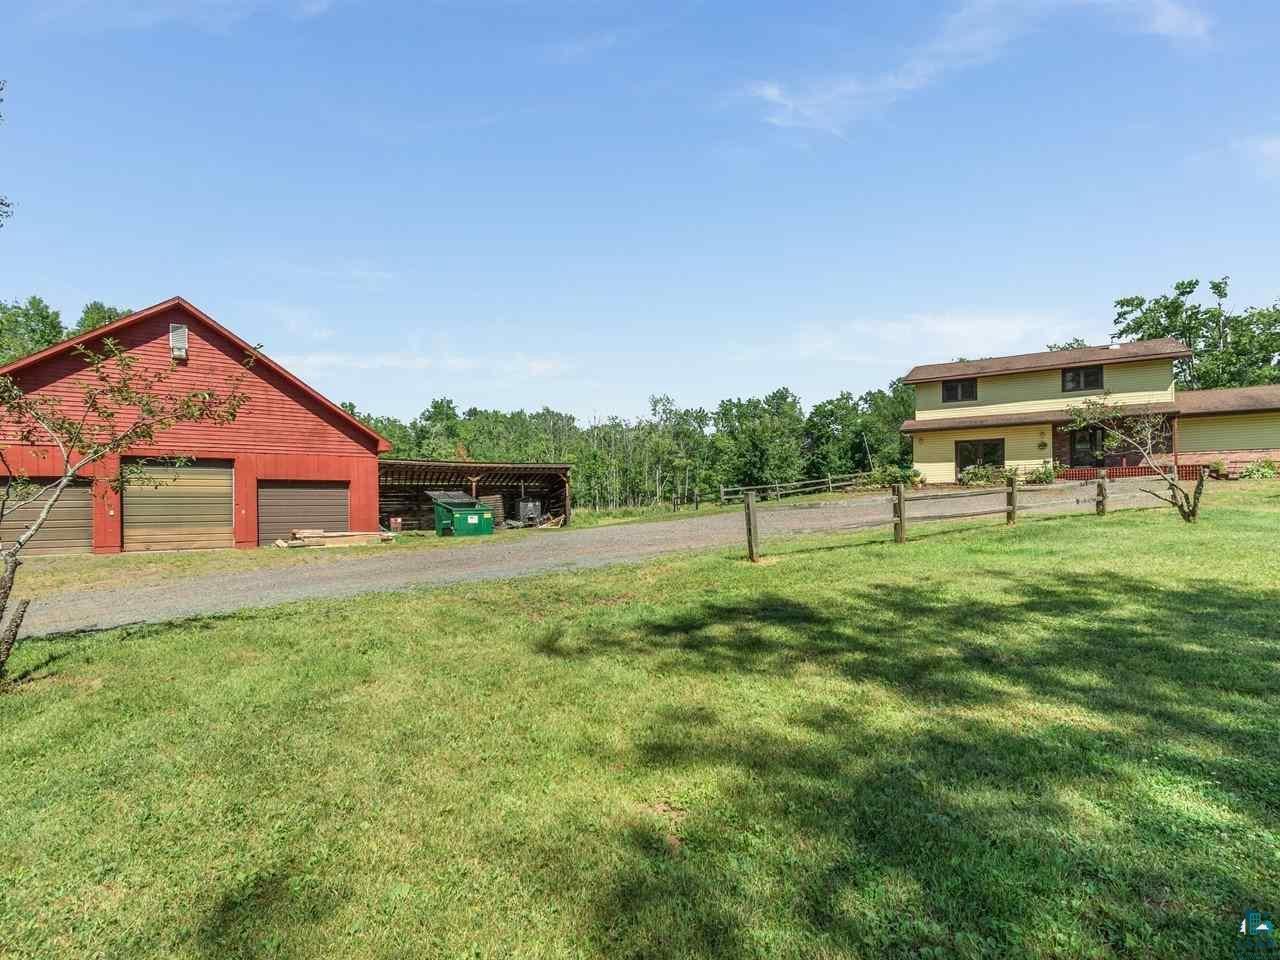 Enjoy country living just 11 miles from town in this completely updated 2-story home on 40 acres. The house includes 4 bedrooms & 3 baths and features a sunken master bedroom with a spacious full bath, including a steam shower & separate jetted tub. There's newer oak flooring throughout the main level, including the spacious living room with its bay window. The gorgeous custom kitchen features cherry cabinets, granite counter tops & stainless appliances. The adjacent dining space can fit a large table and has patio doors to a nice deck. There's also a main floor den the could also be used as a smaller family room or TV room. From here you can access a 2nd deck off the back of the home. A powder room & main floor laundry complete the main level. The upstairs features 3 bedrooms & a full bath. The bedrooms all have oak flooring & nice closet space. The largest has a walk-in closet. The lower level boasts a huge rec room that is mostly finished (just needs a ceiling & lighting). The homes forced air heating system is propane fed but can also be run off an outdoor wood boiler. Need space for toys? There's a wonderful 36x50 heated garage that will fit 3 large vehicles & includes a 36x21 shop in the rear & loft storage. This property would make a great hobby farm with its 36x20 barn, lean-to & several steel sheds for storage. There's even a pond with a fountain!